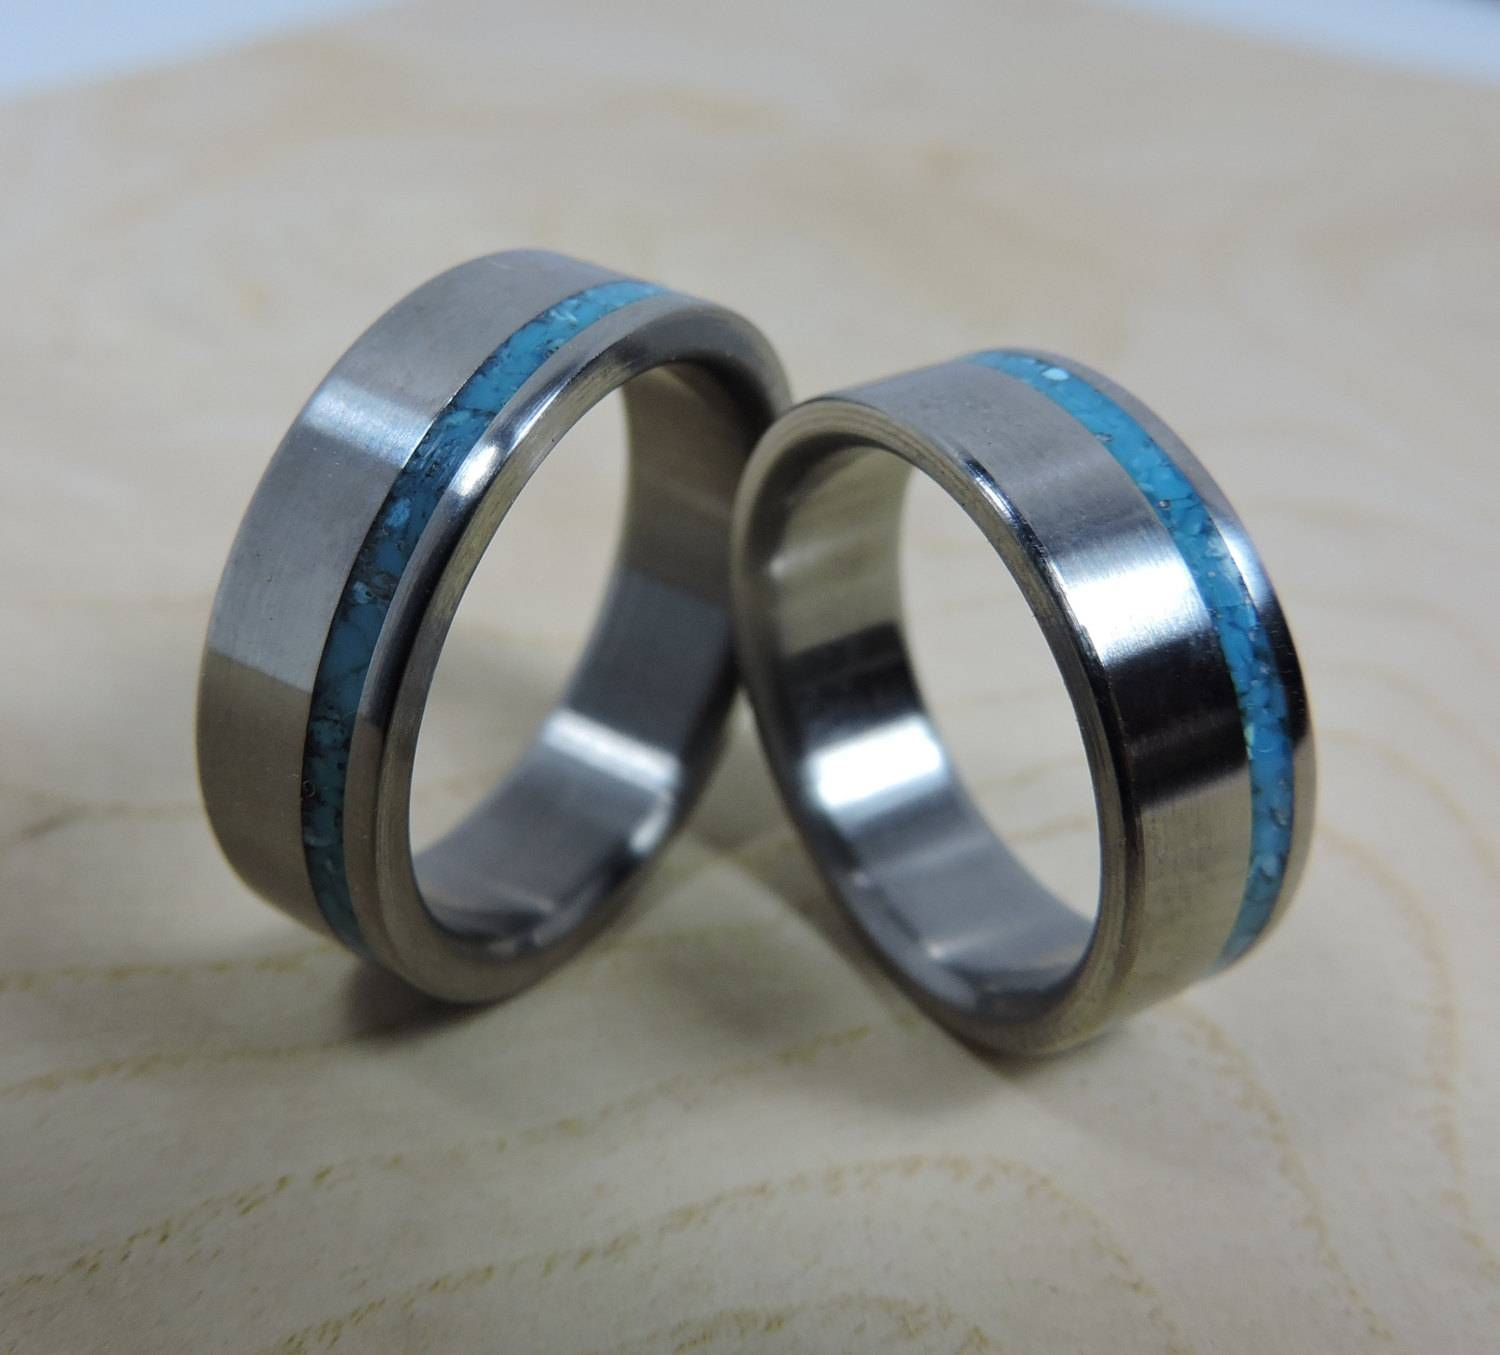 Titanium Rings, Wedding Rings, Turquoise Rings, Wedding Band Set Intended For Titanium Wedding Bands (View 13 of 15)